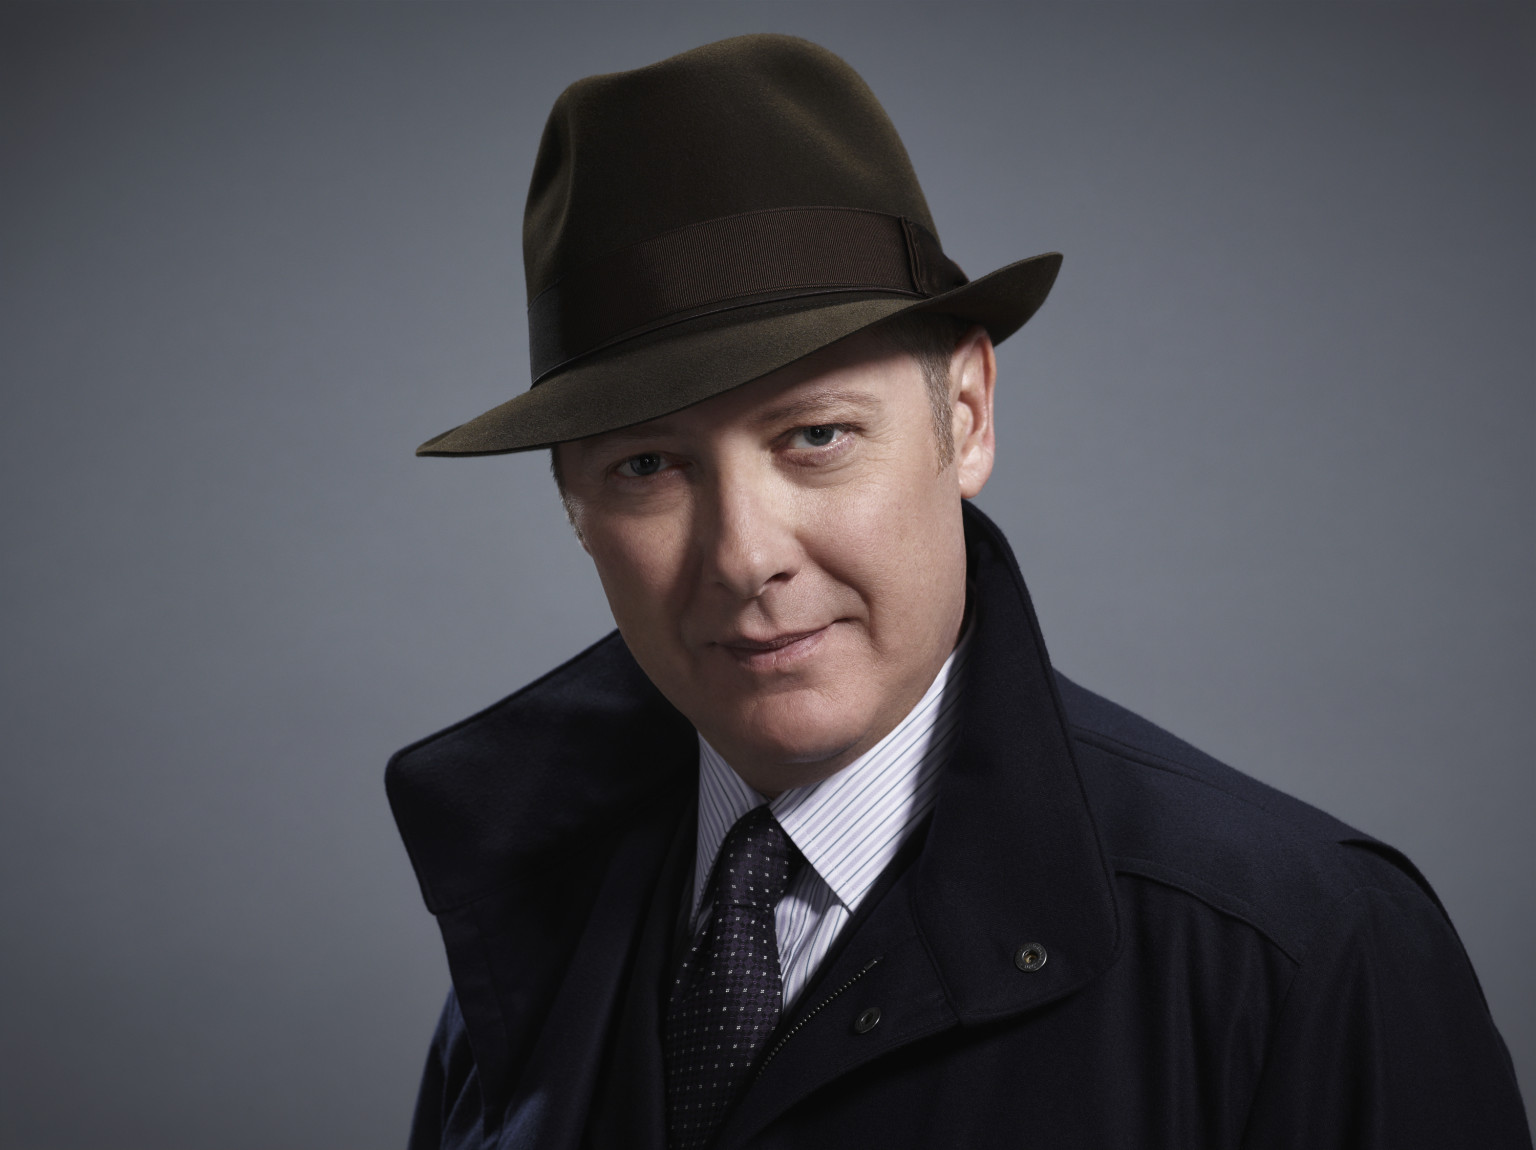 'The Blacklist' On NBC: Exclusive First Look At James